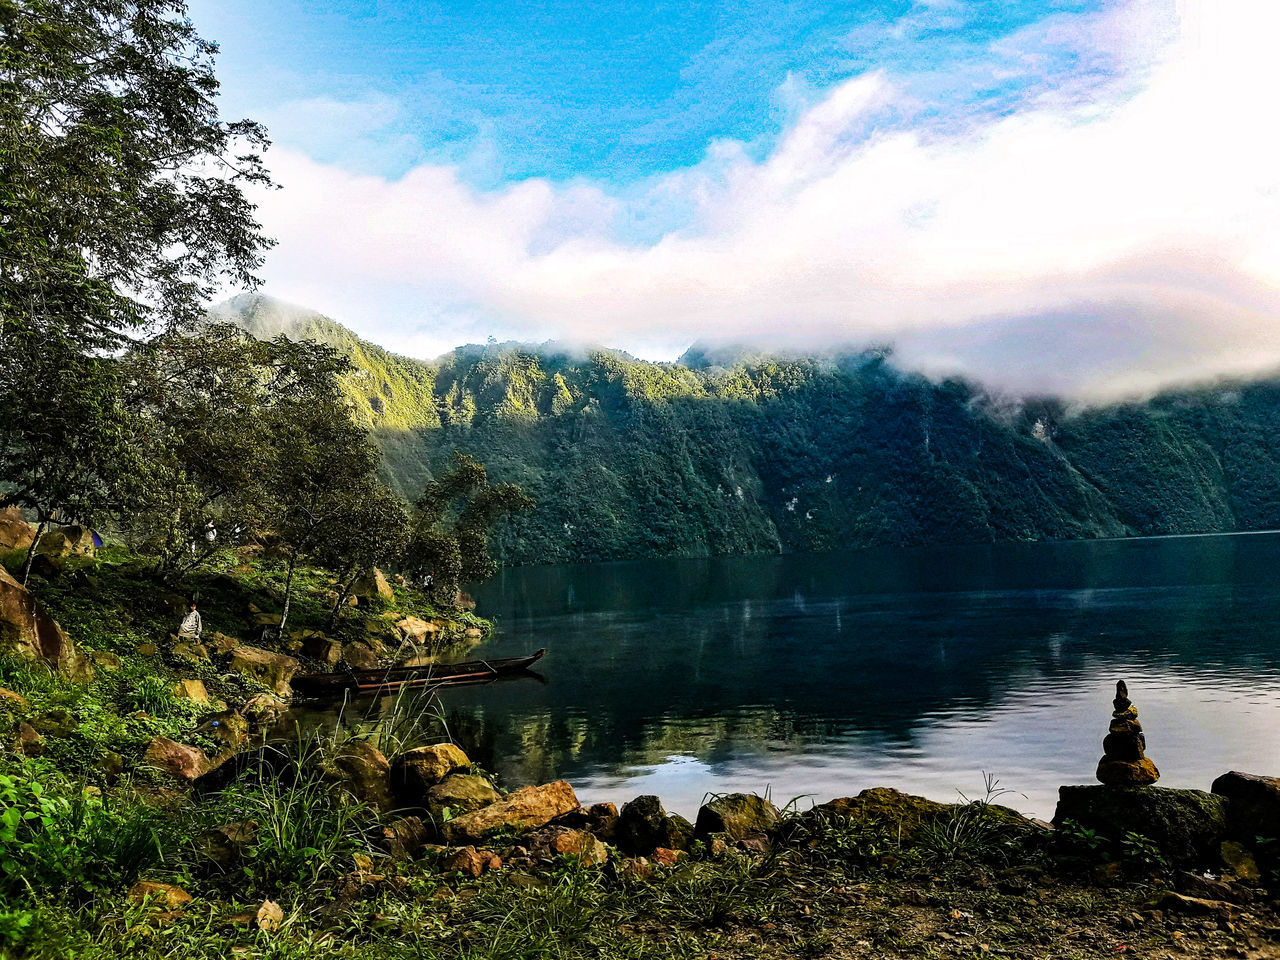 nature, tree, scenics, beauty in nature, sky, tranquil scene, tranquility, mountain, water, cloud - sky, lake, day, non-urban scene, idyllic, outdoors, no people, mountain range, landscape, growth, forest, grass